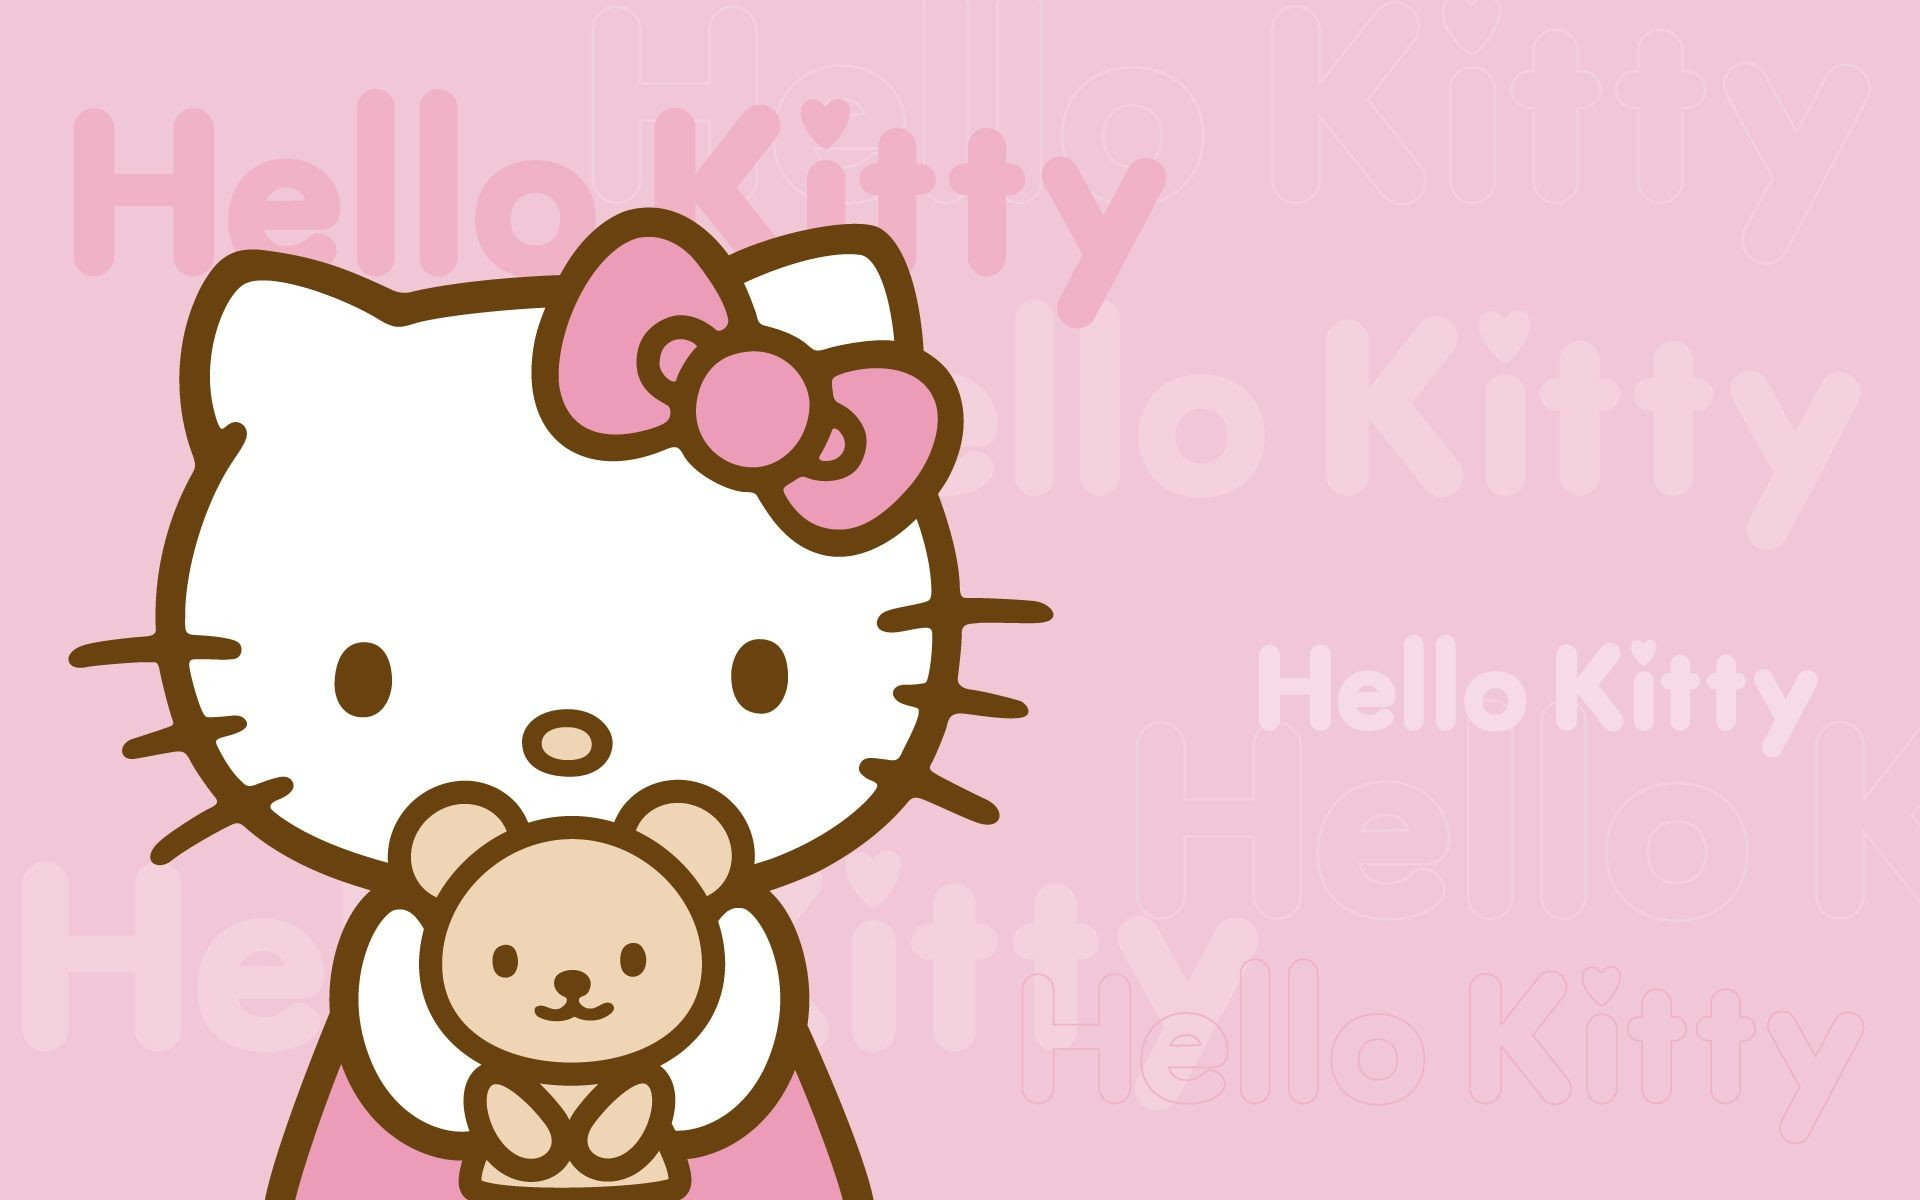 Download Wallpaper Hello Kitty Thanksgiving - 715372-hello-kitty-desktop-backgrounds-1920x1200-hd-1080p  You Should Have_231940.jpg